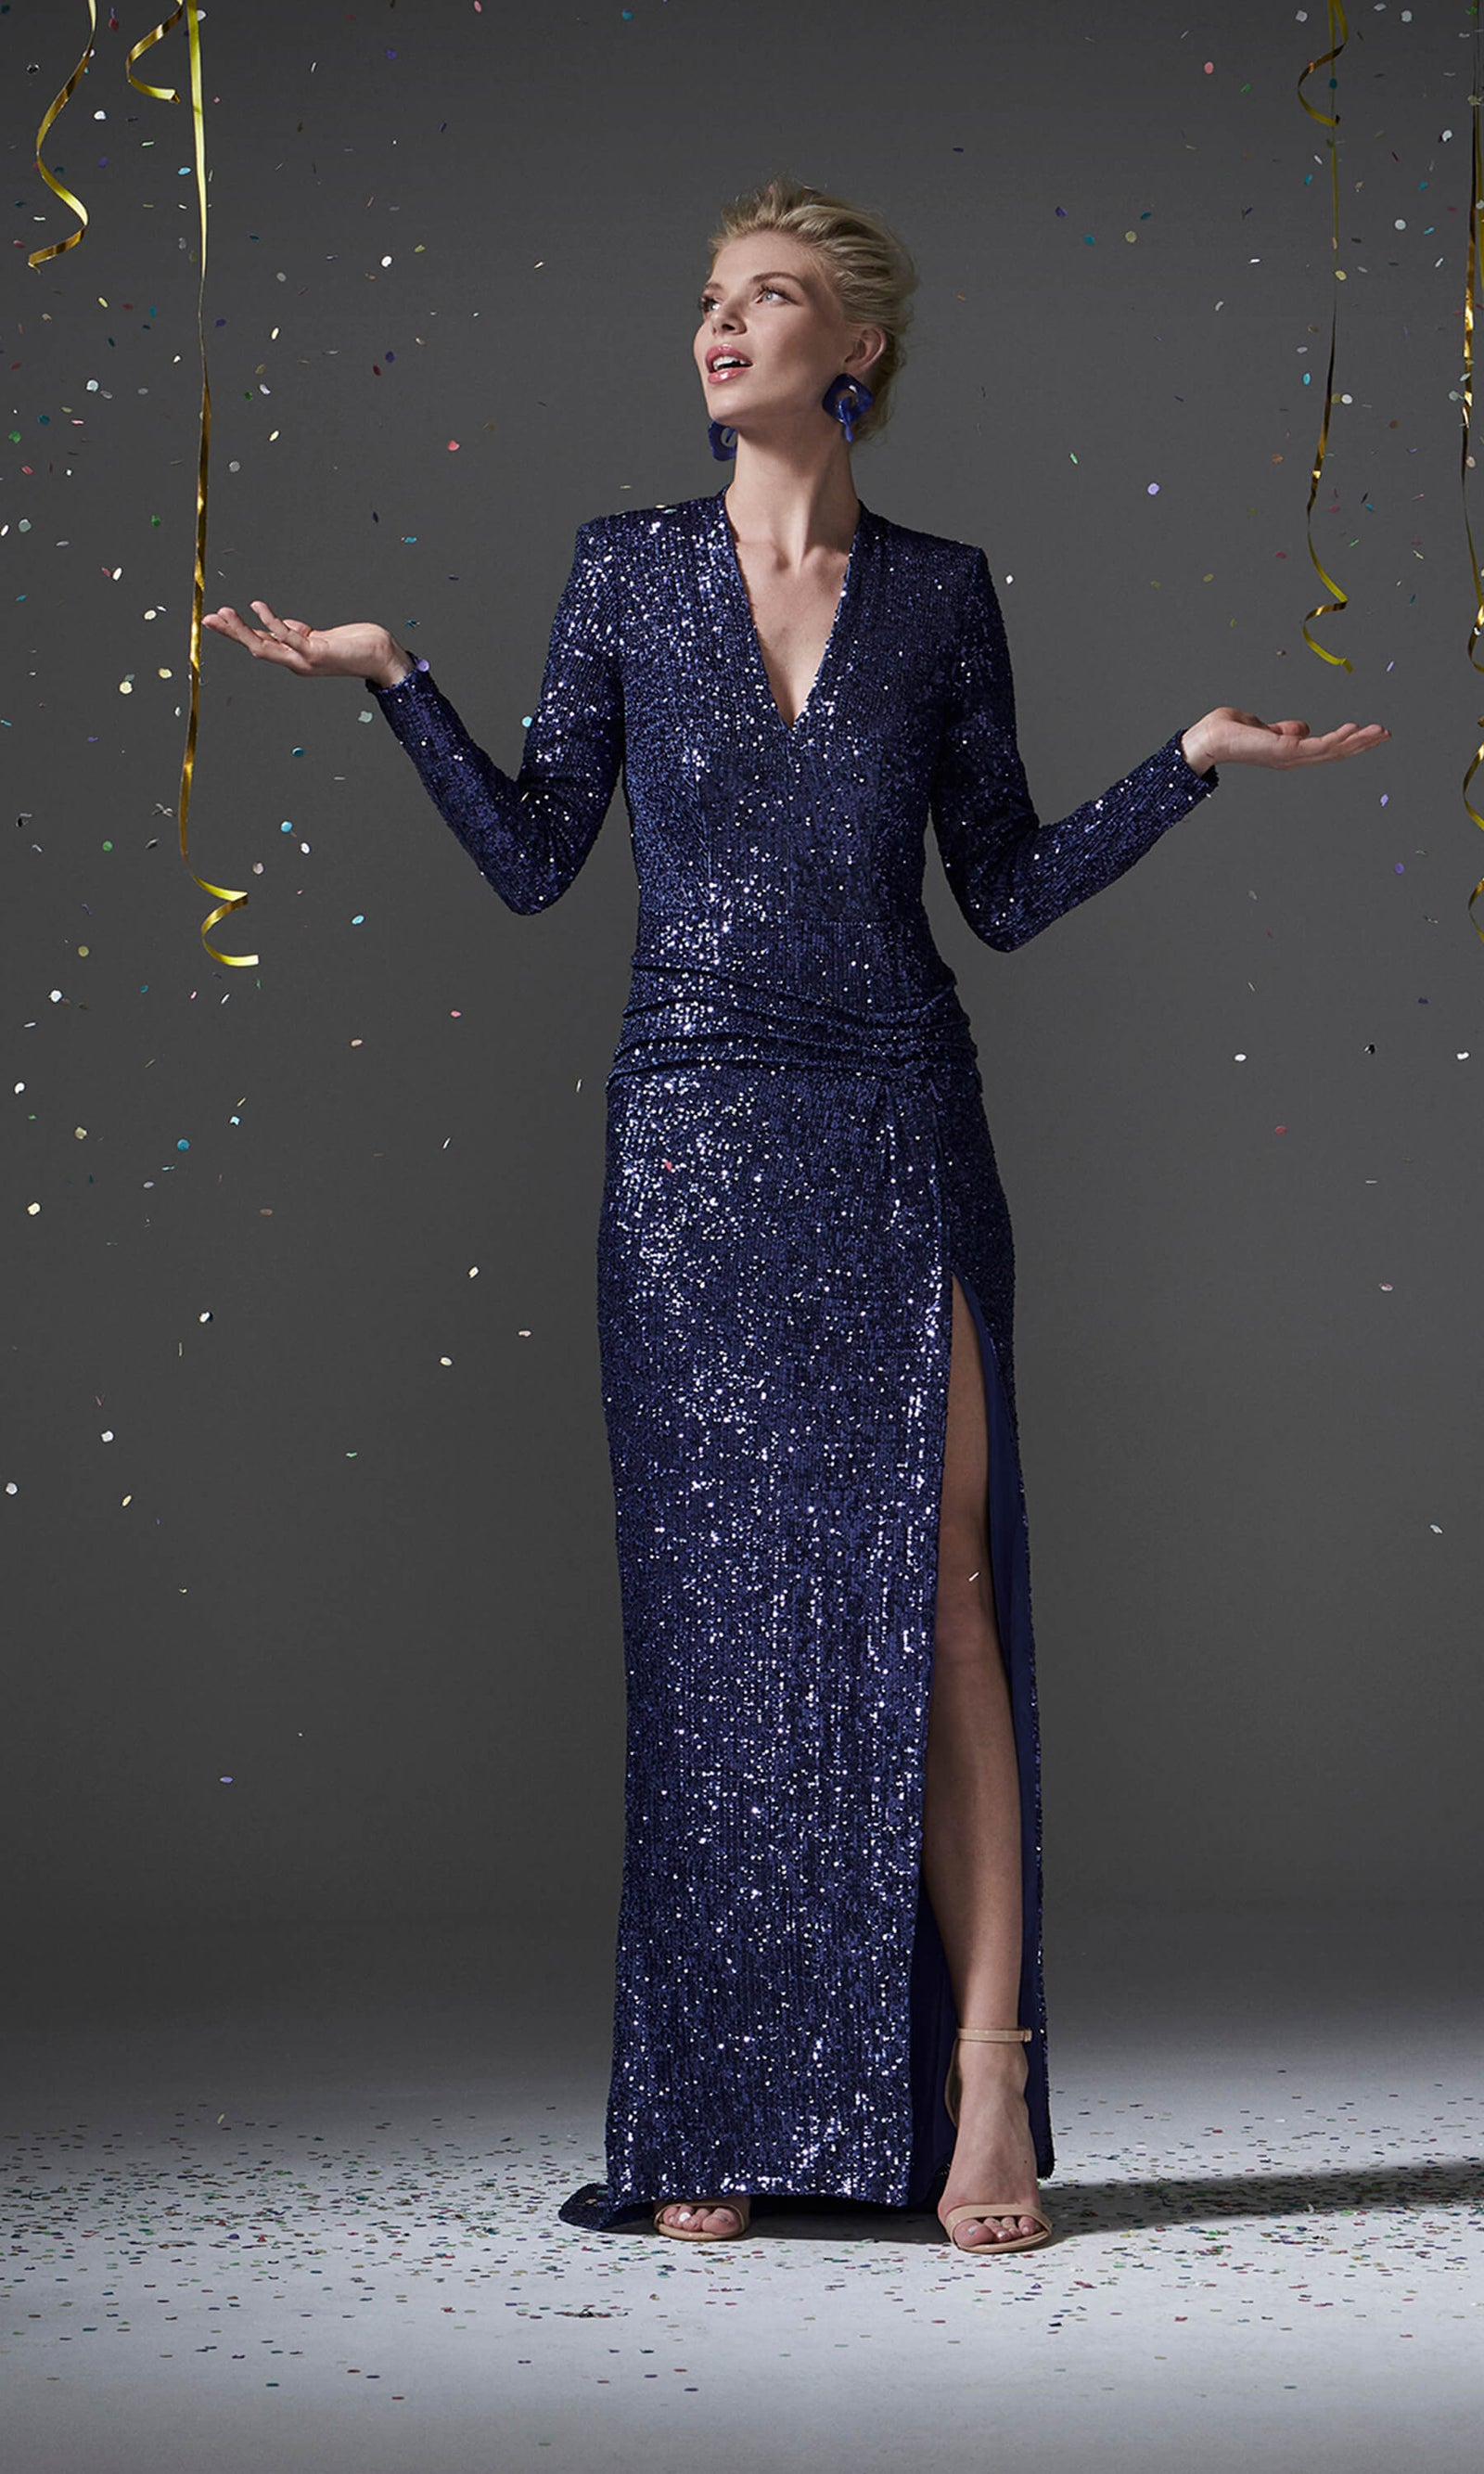 96100 Blue Carla Ruiz Sequin Evening Dress With Sleeves - Fab Frocks